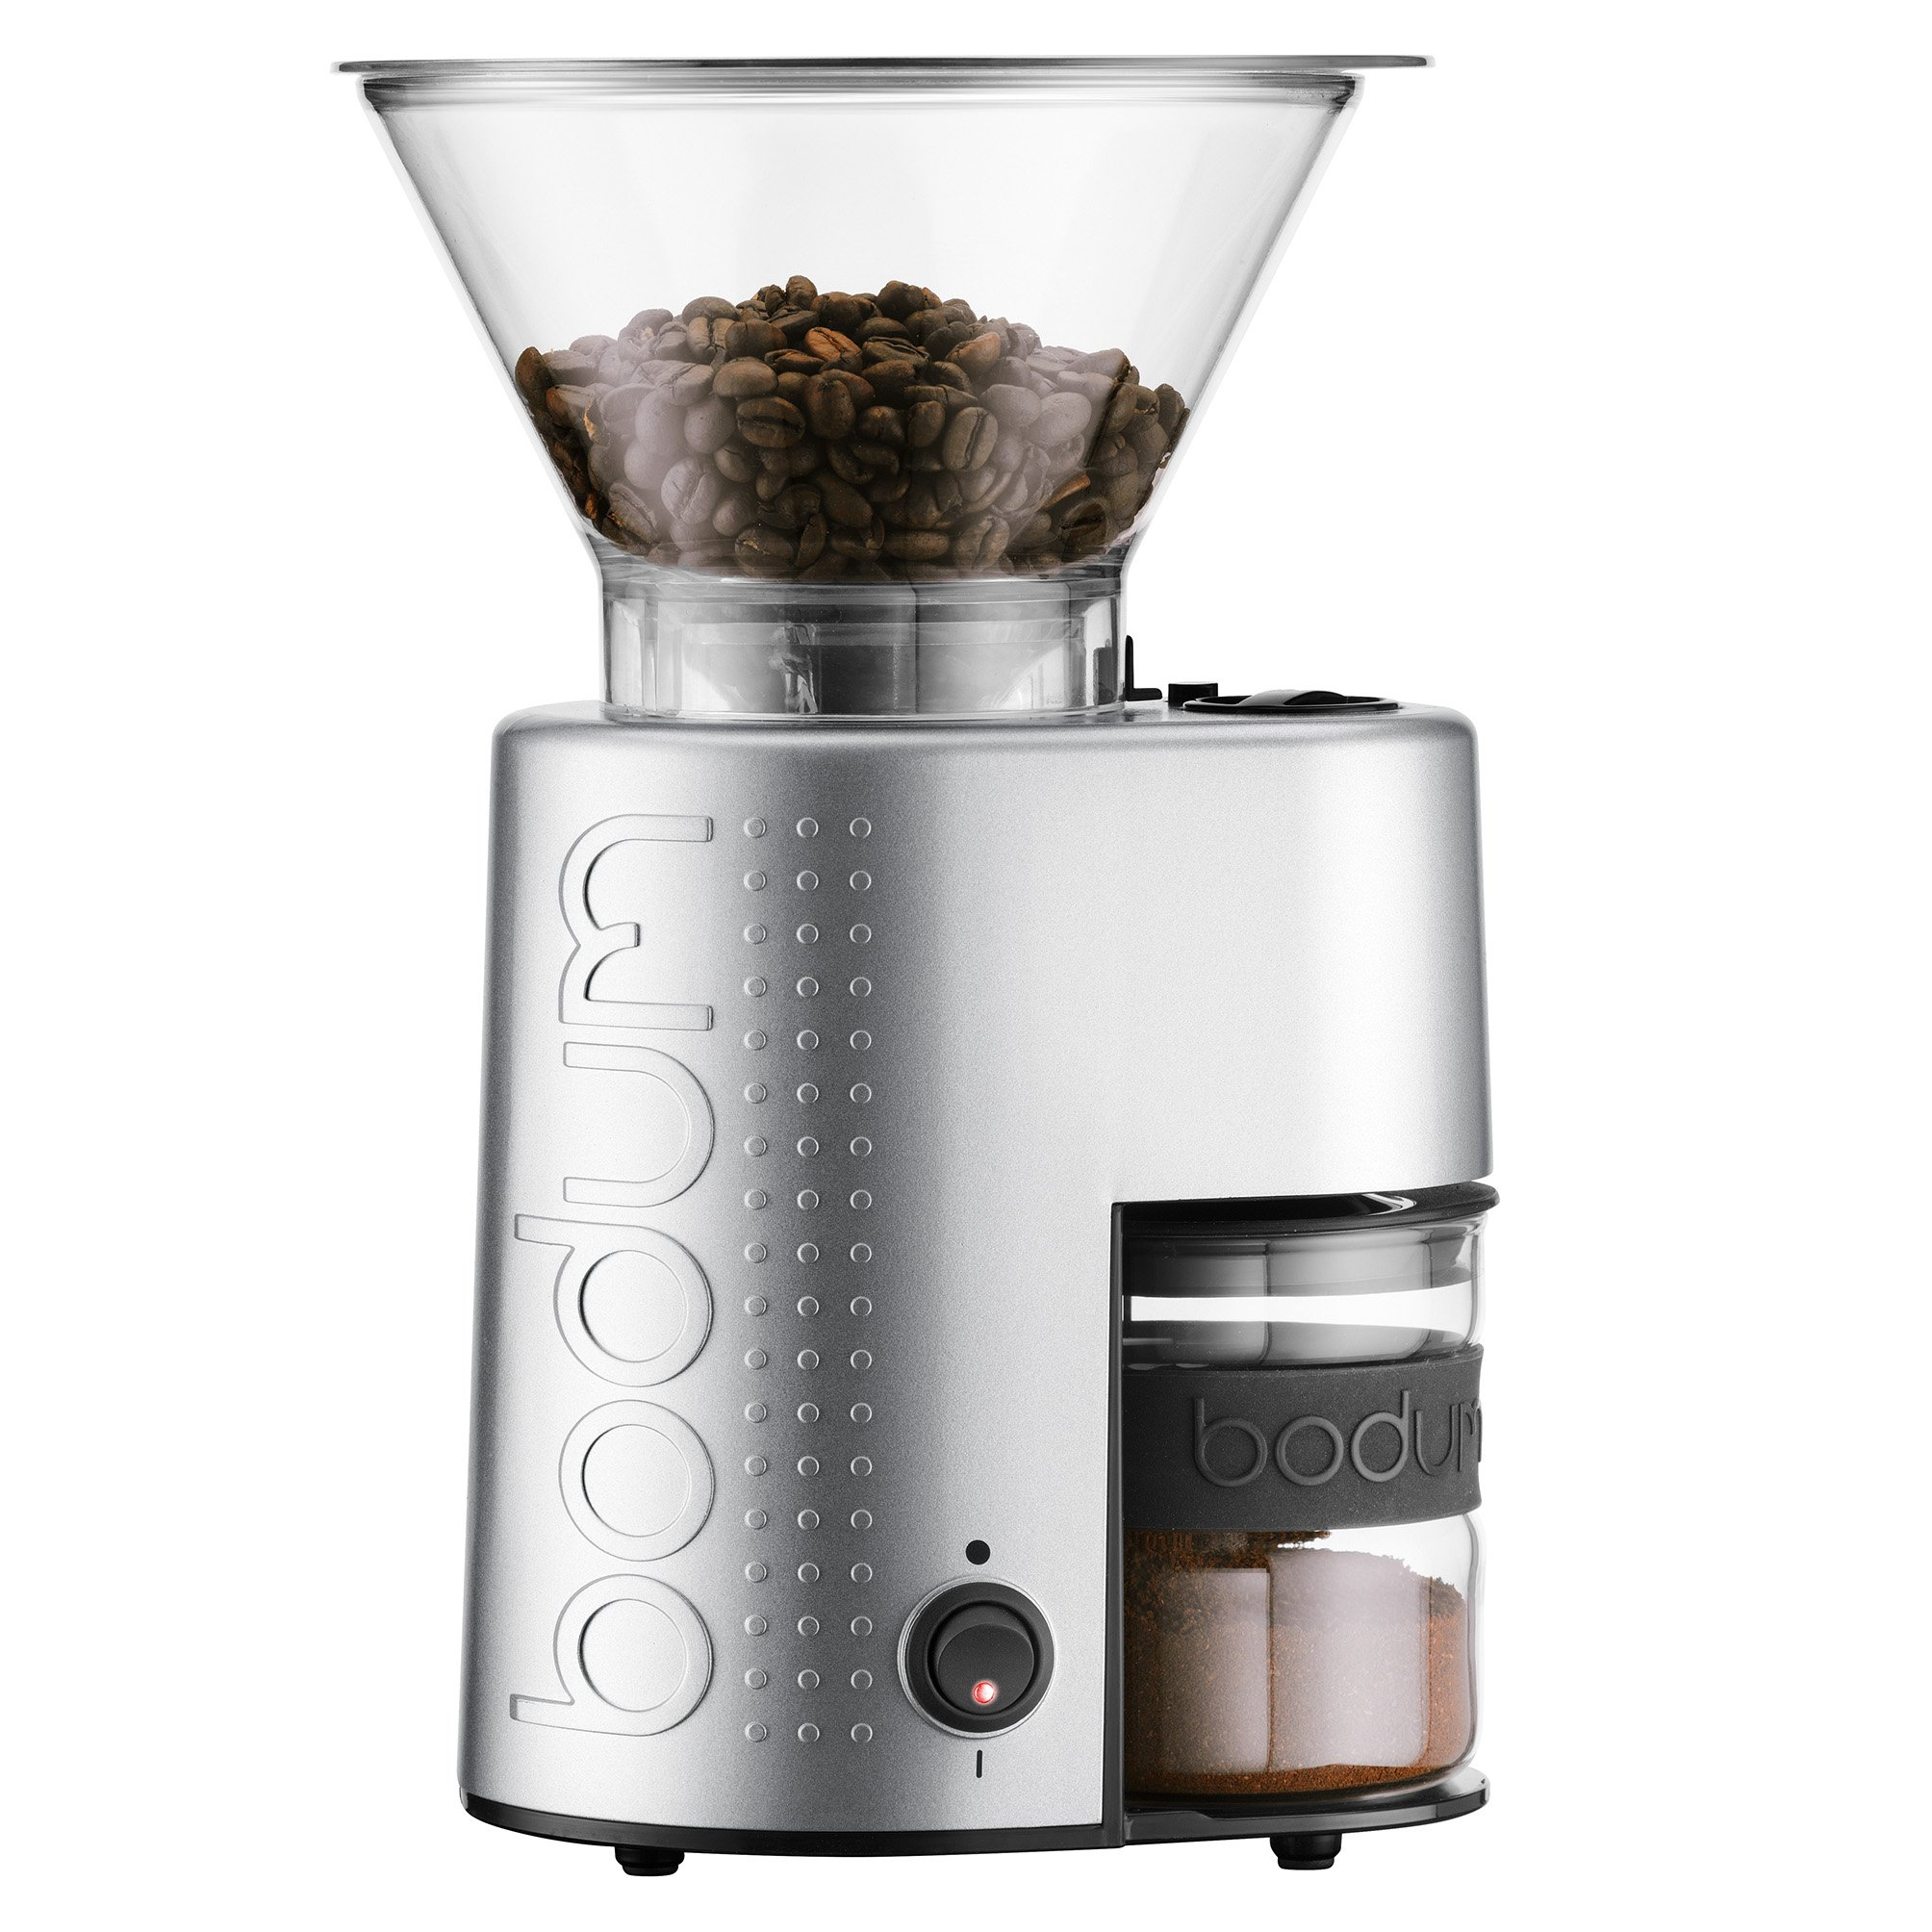 Bodum 10903-70US-1 Bistro Electric Burr Coffee Grinder, Aluminum, Chrome